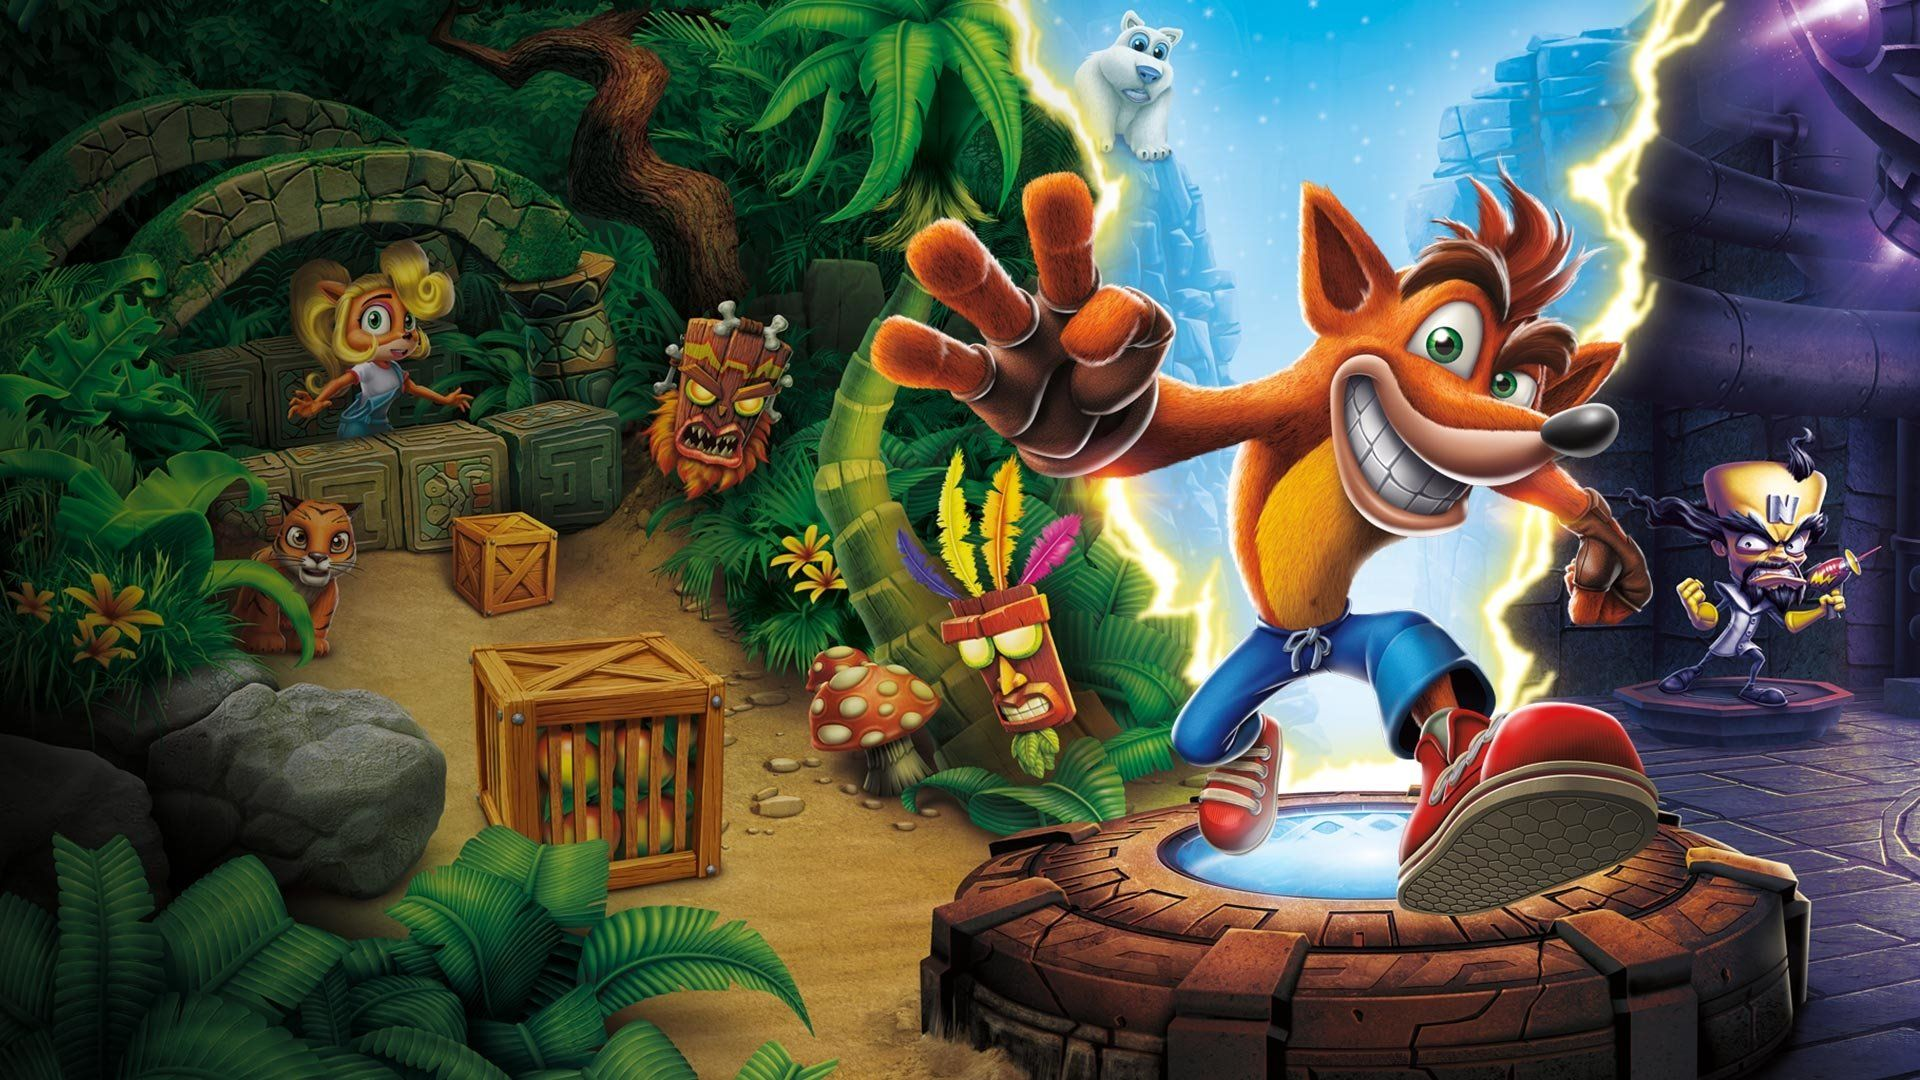 Crash Bandicoot Wallpapers - Top Free